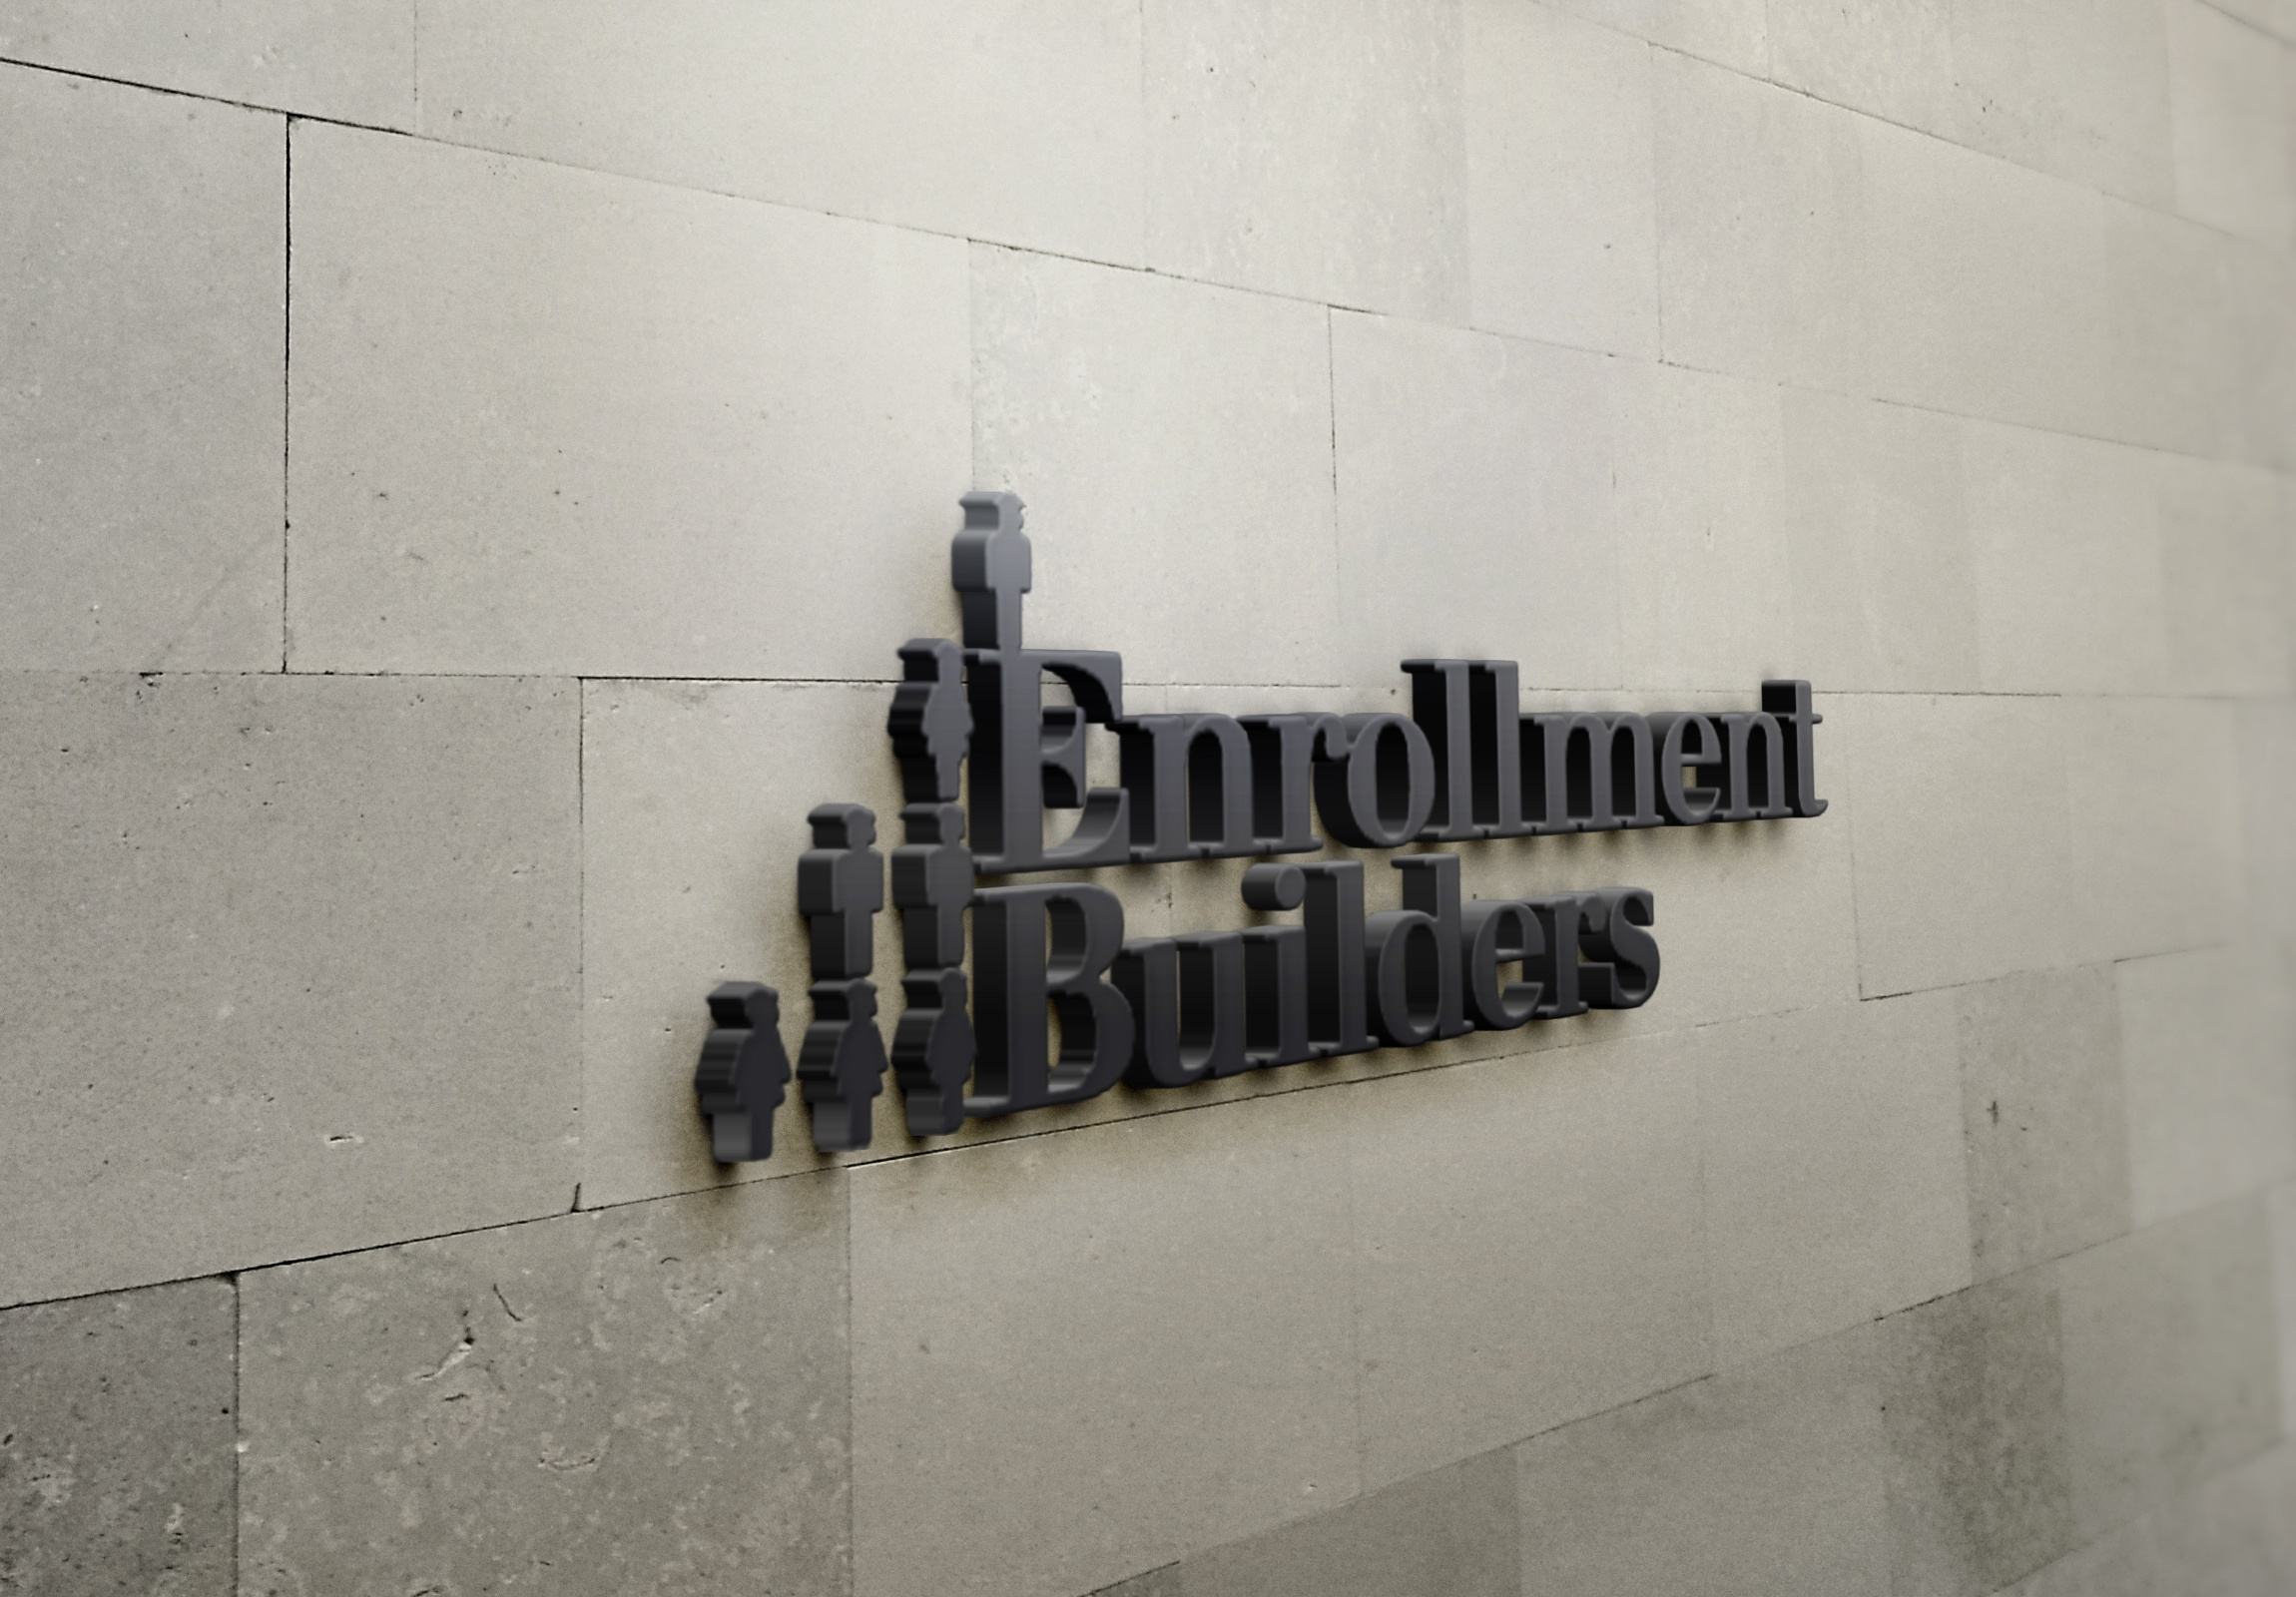 Enrollment_Builders_Wall.jpg